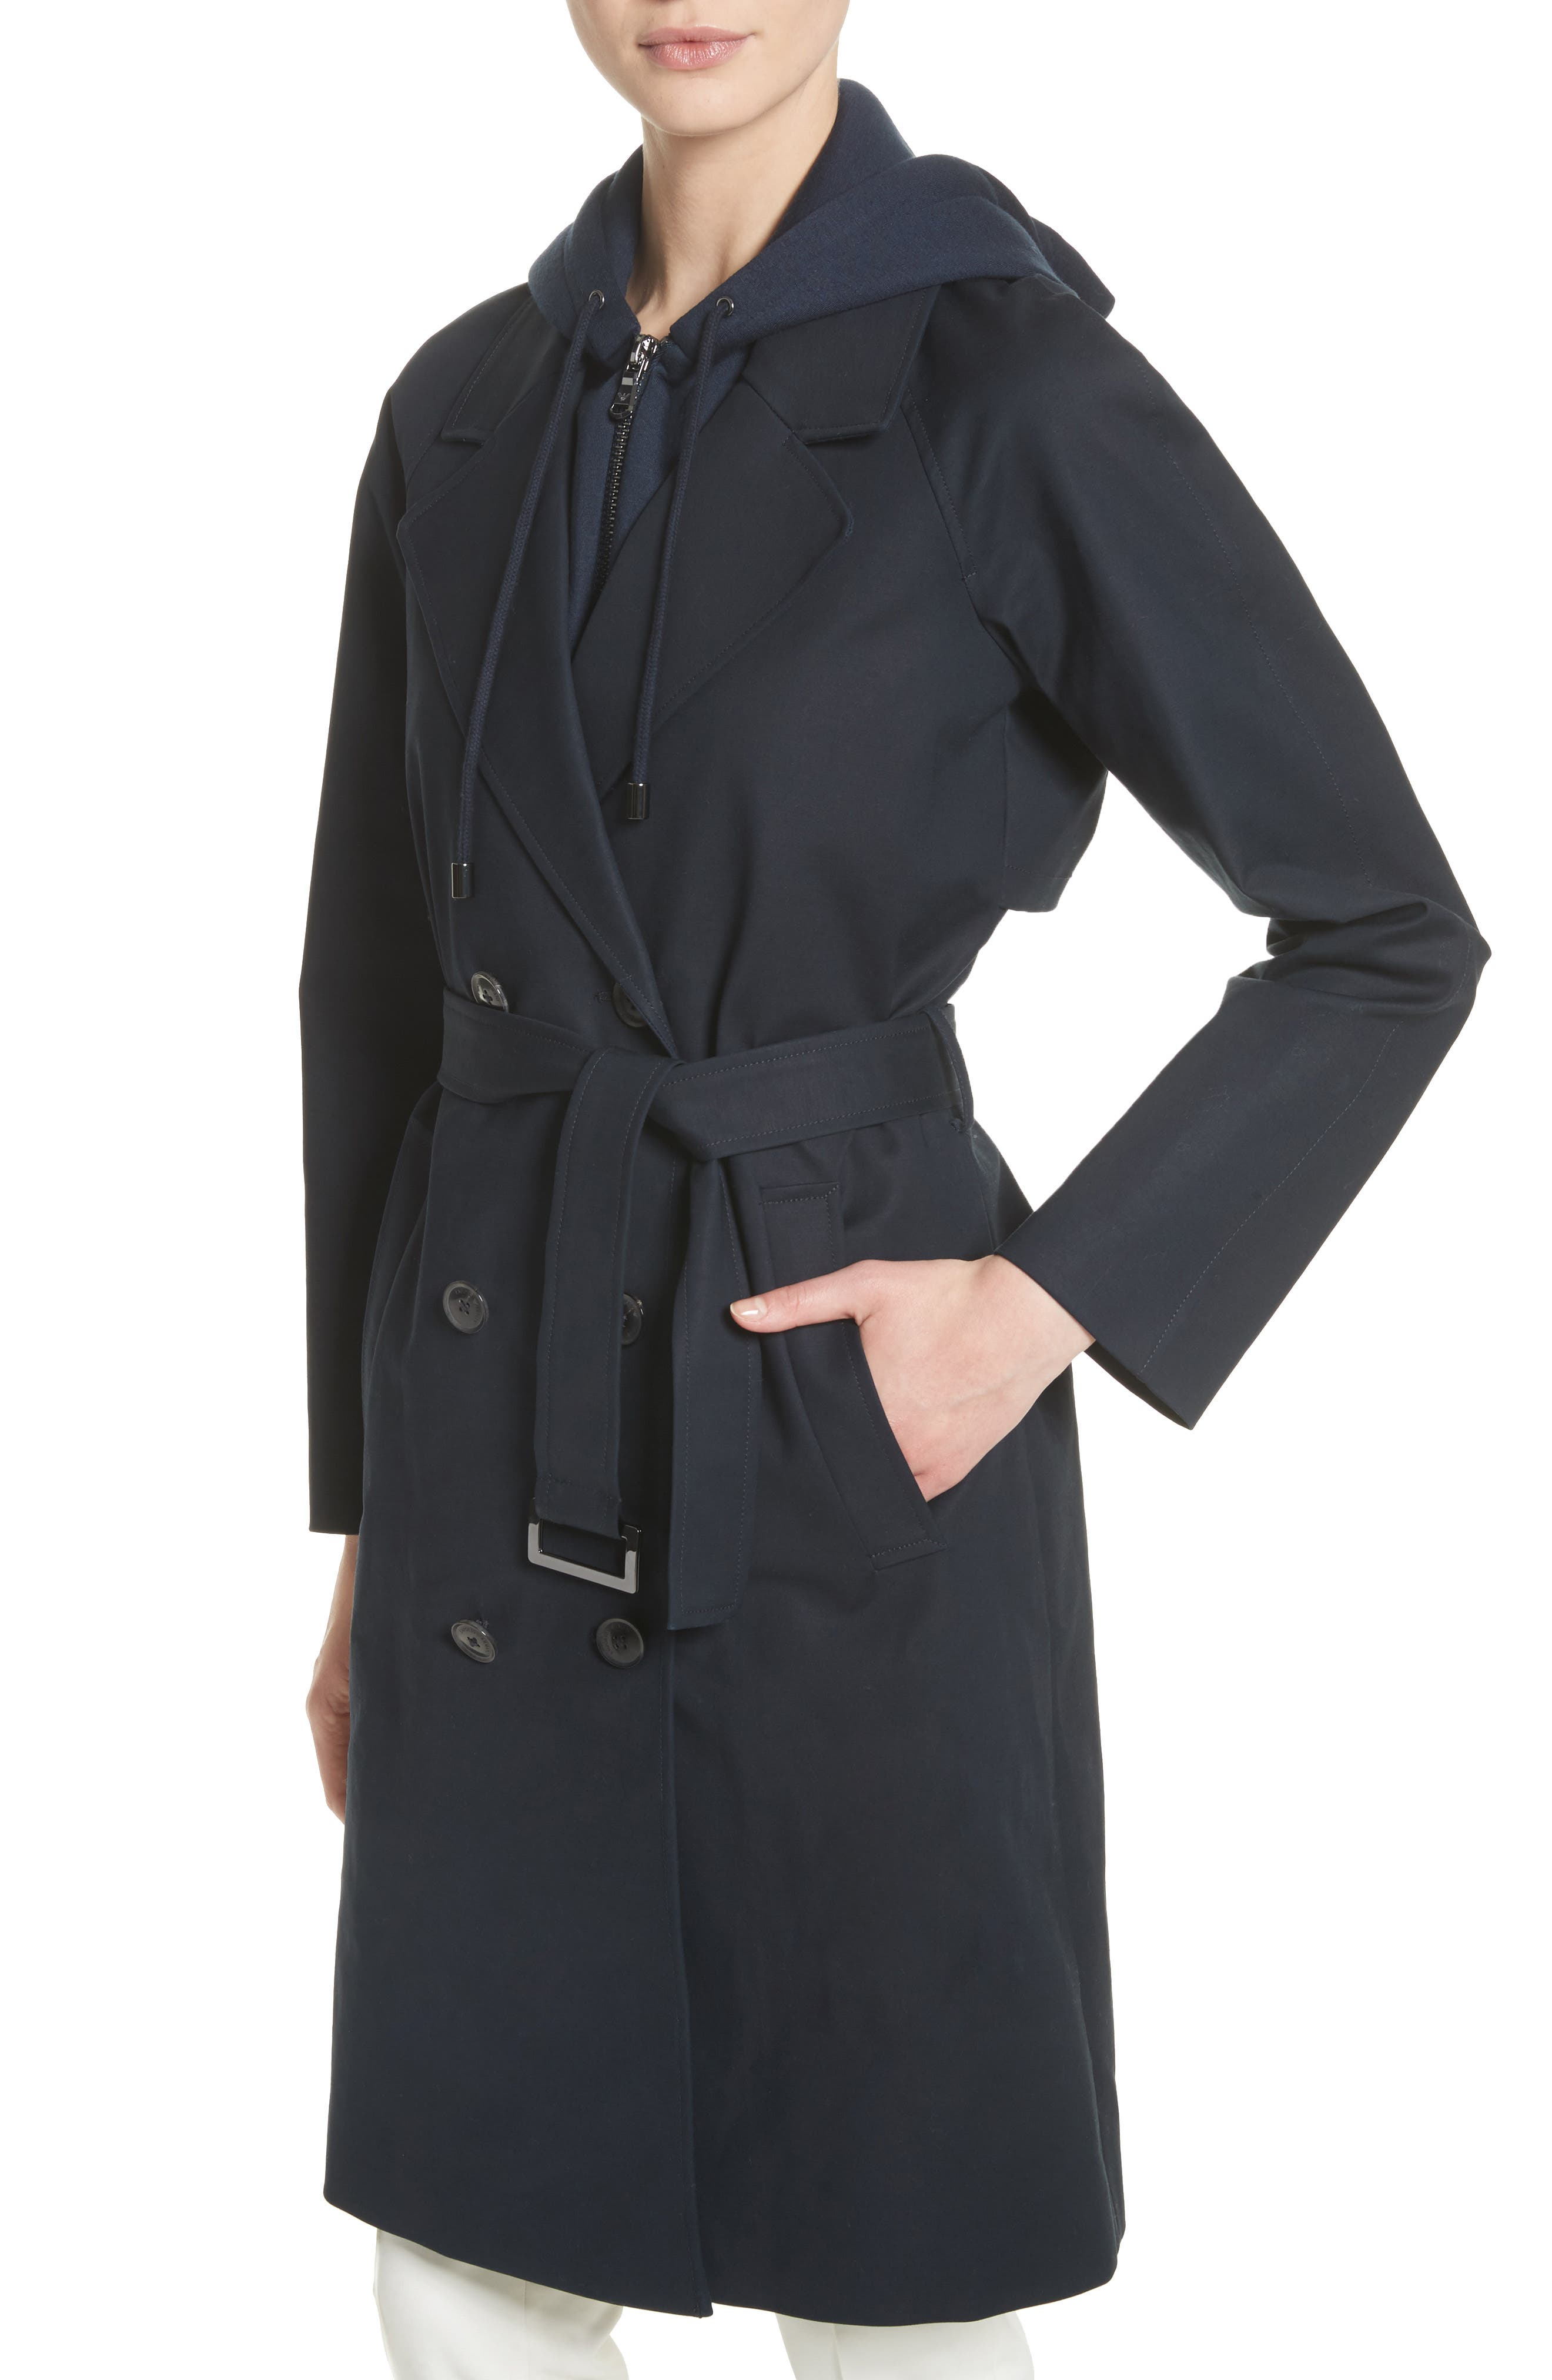 Alternate Image 3  - Emporio Armani Double Breasted Cotton Blend Trench Coat with Removable Hoodie Inset